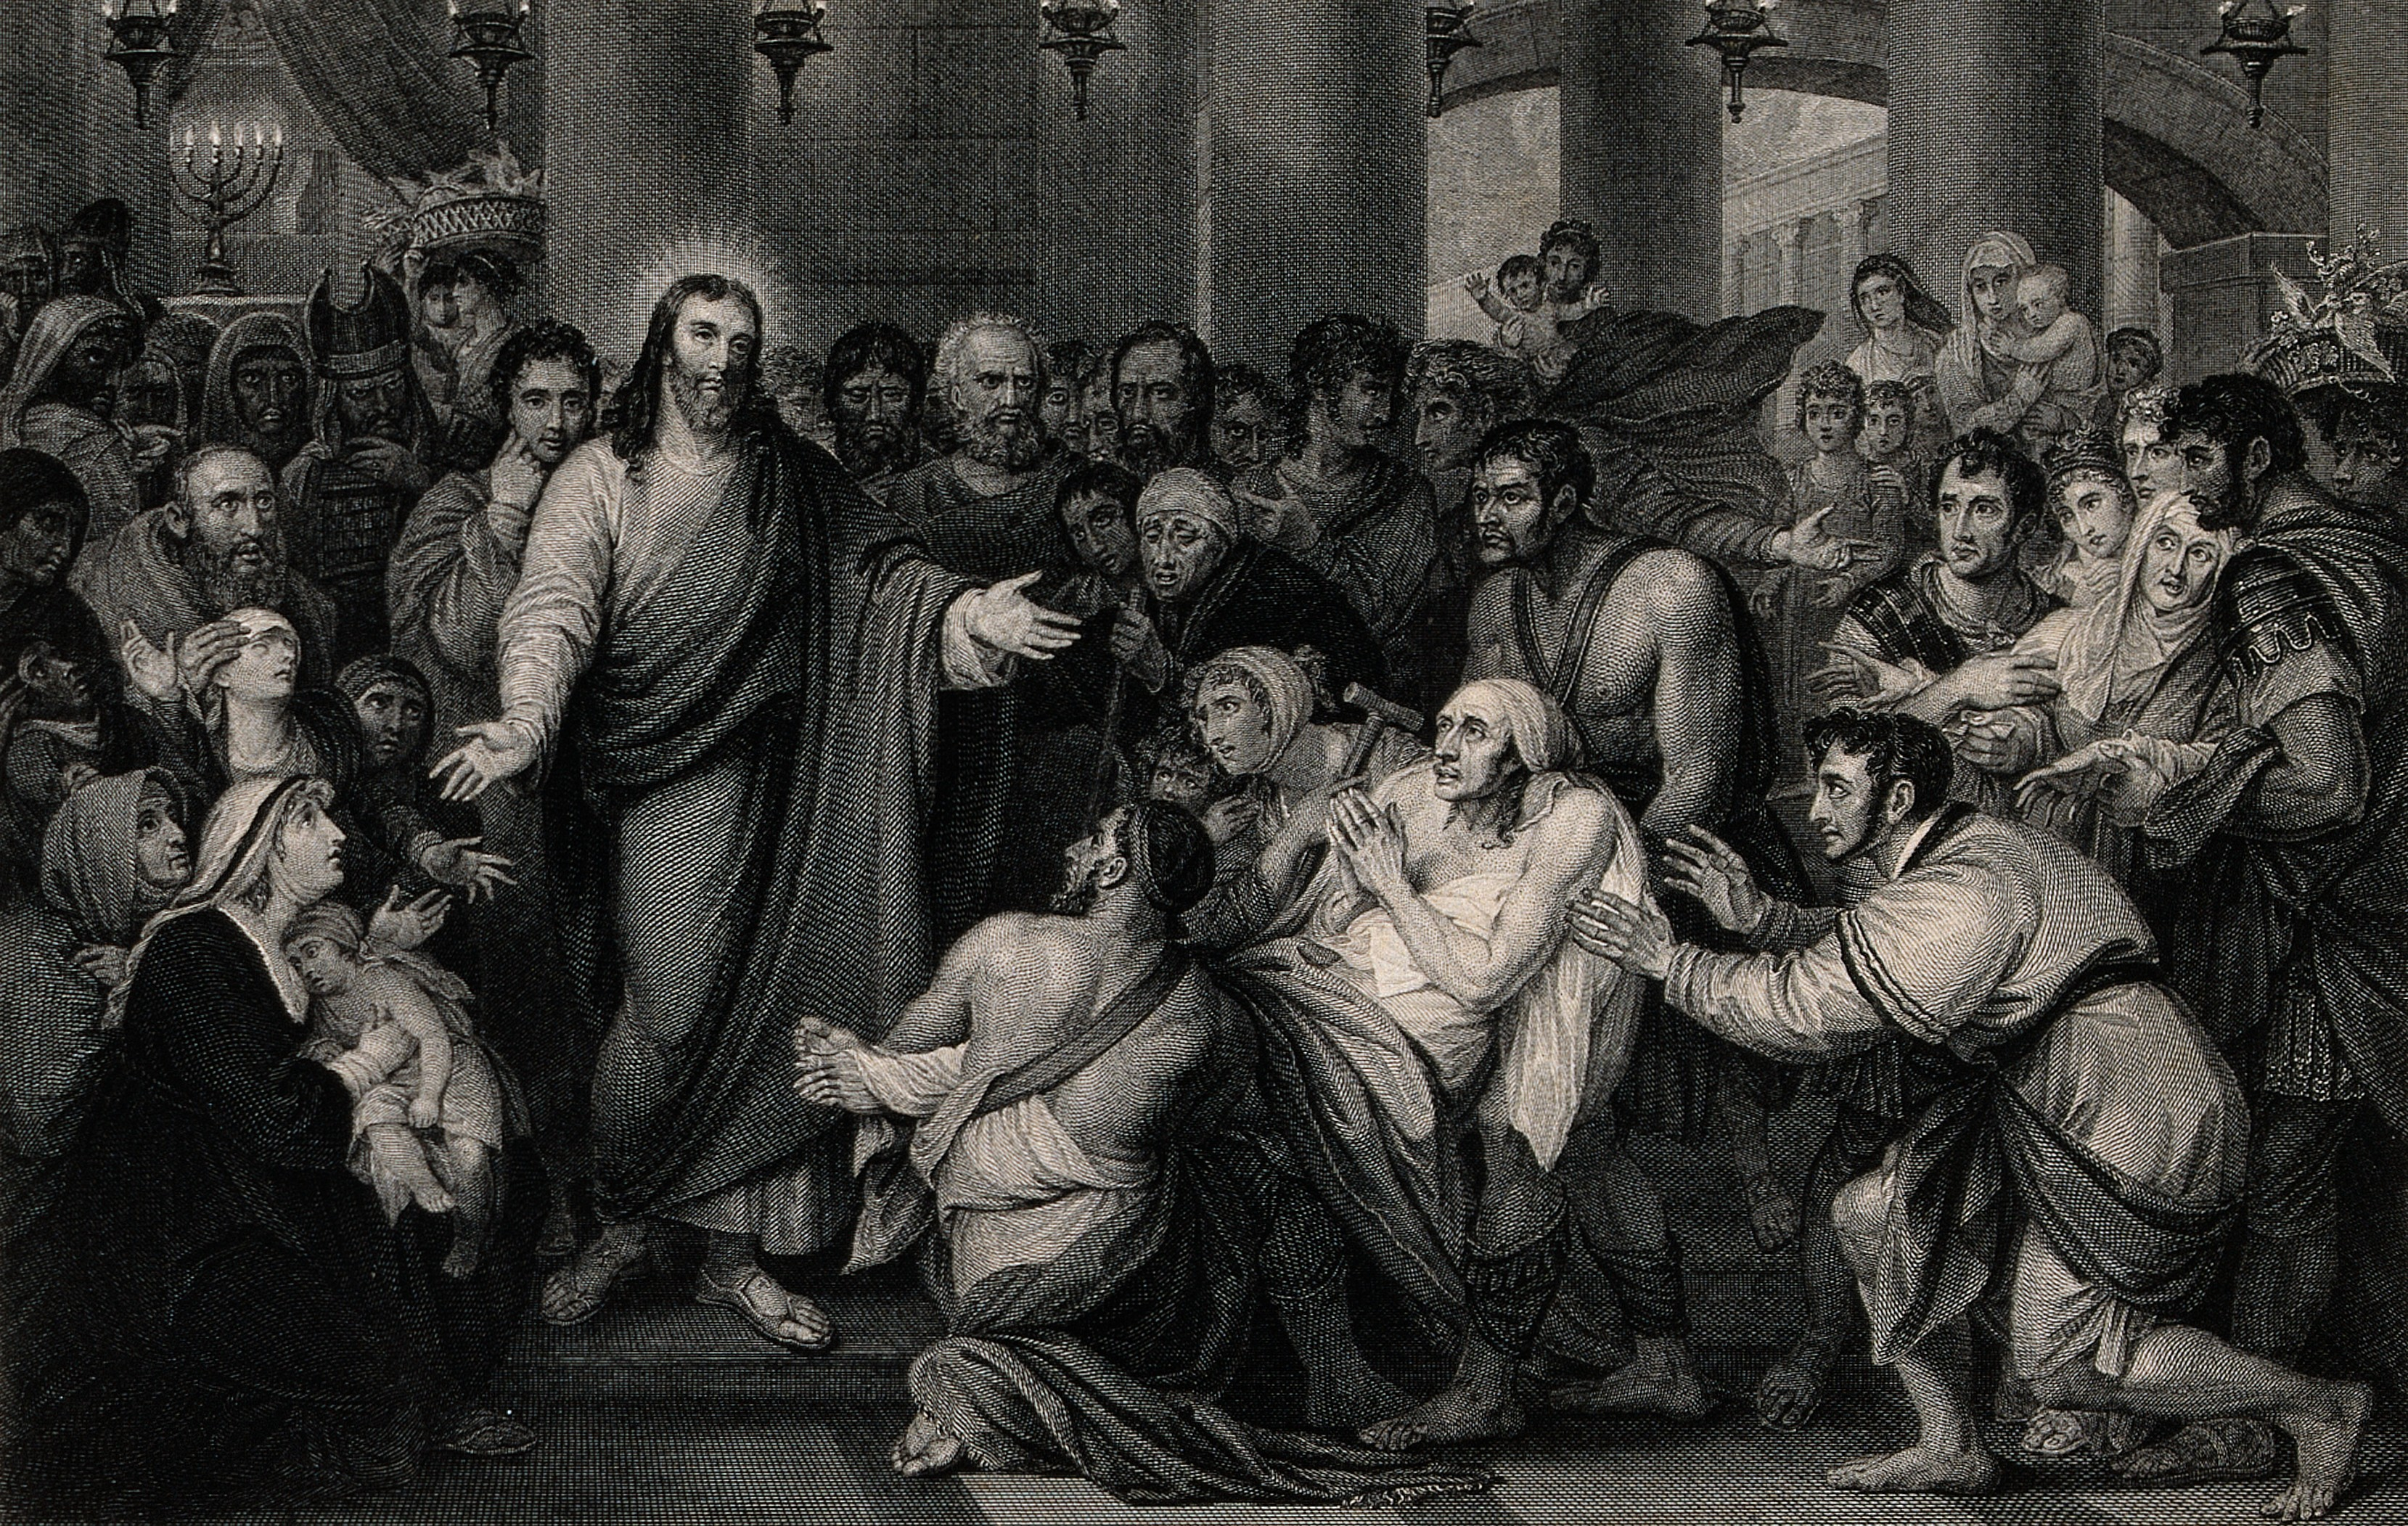 Crowds_gather_as_Christ_heals_the_sick._Engraving_by_T._Phil_Wellcome_V0034932.jpg (3318×2103)